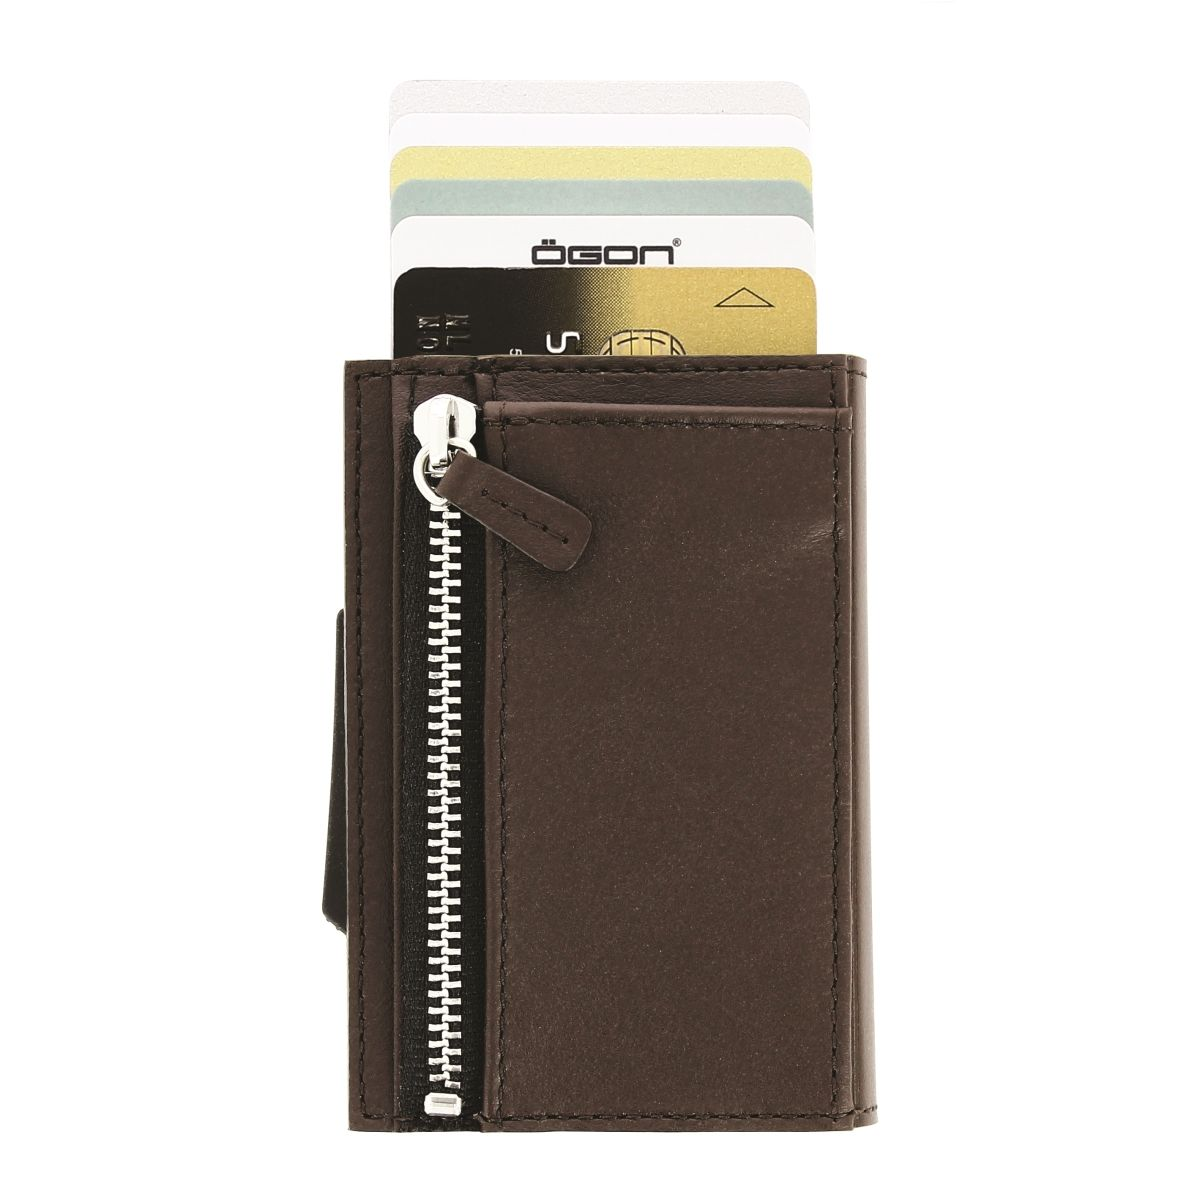 OGON Cascade Card Case Wallet With Zipper - Dark Brown